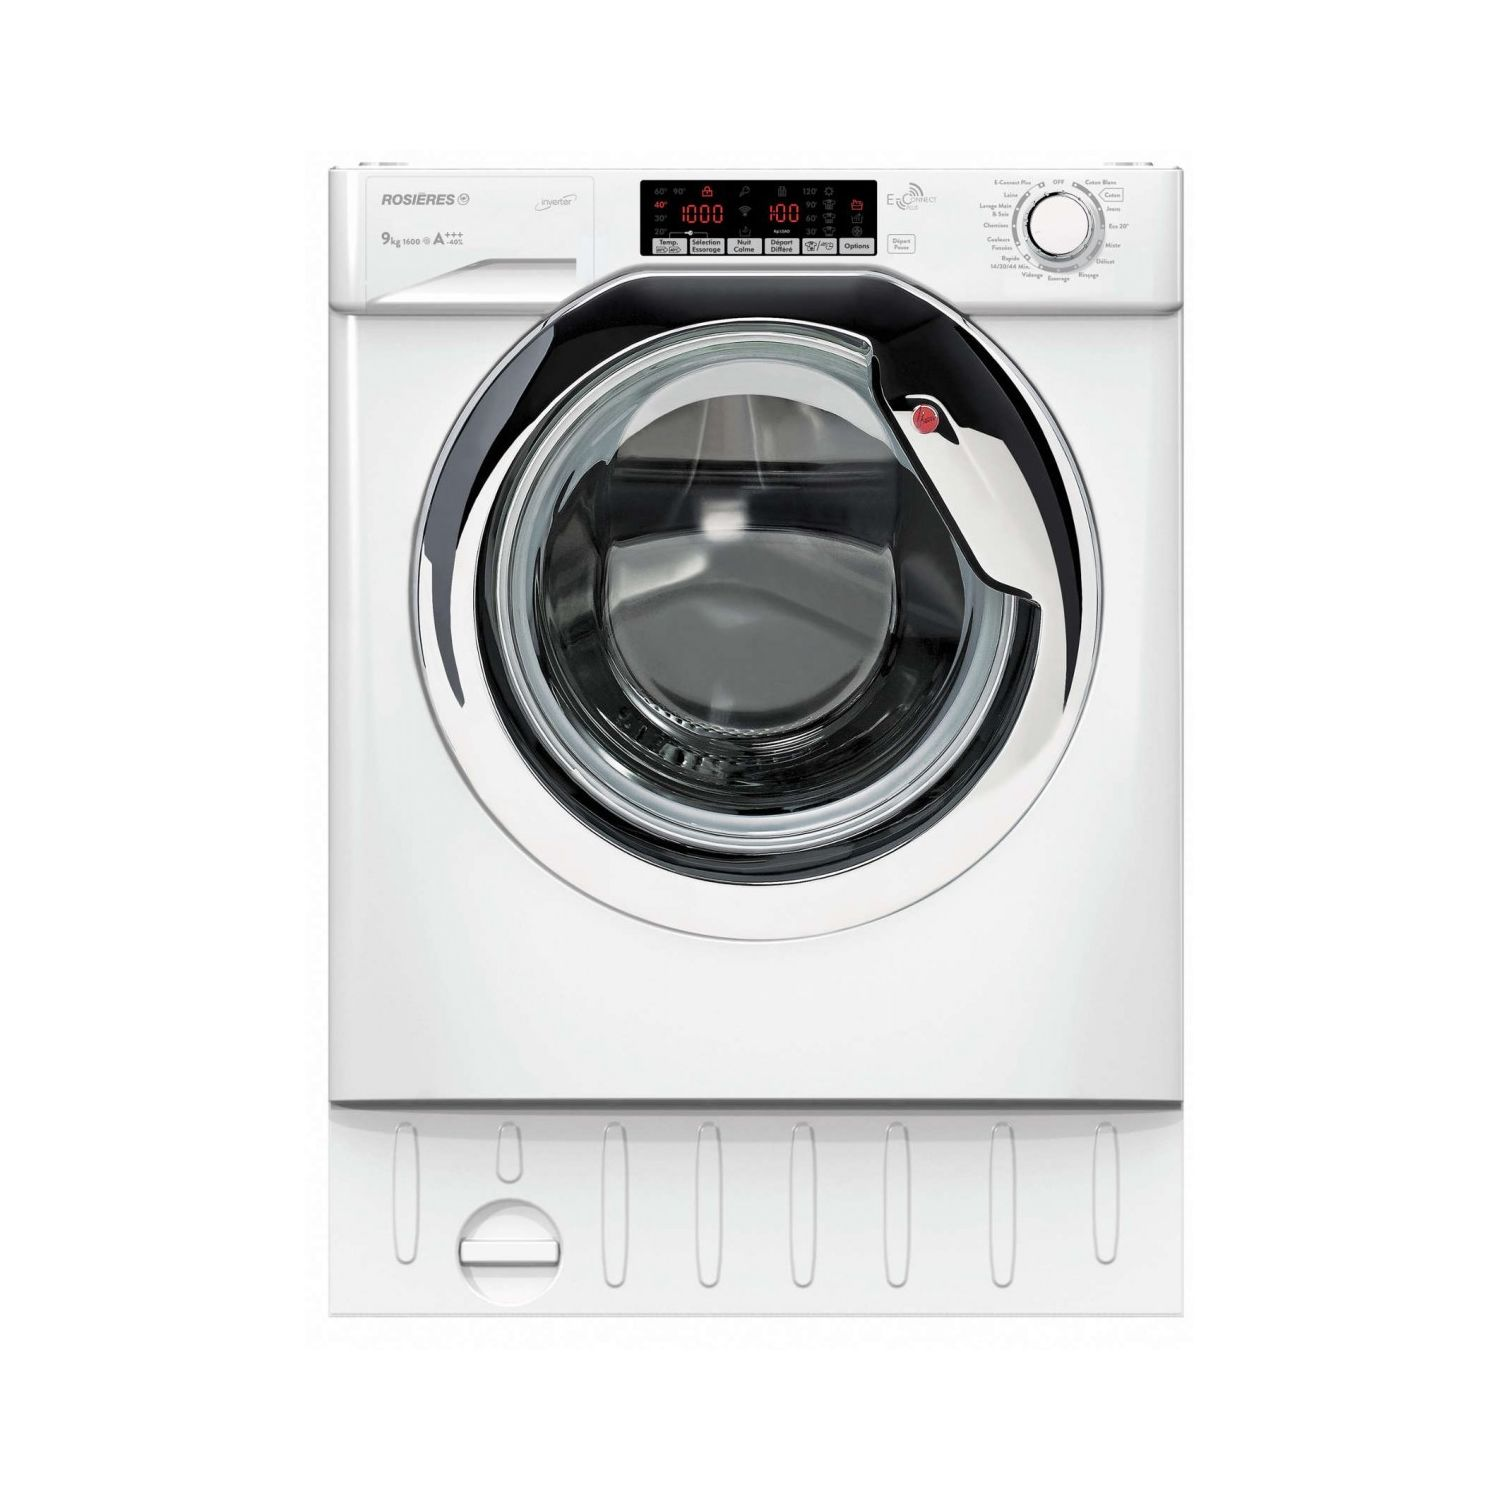 machine a laver 45 cm elegant toshiba washing machine up loading k aewsp with machine a laver. Black Bedroom Furniture Sets. Home Design Ideas